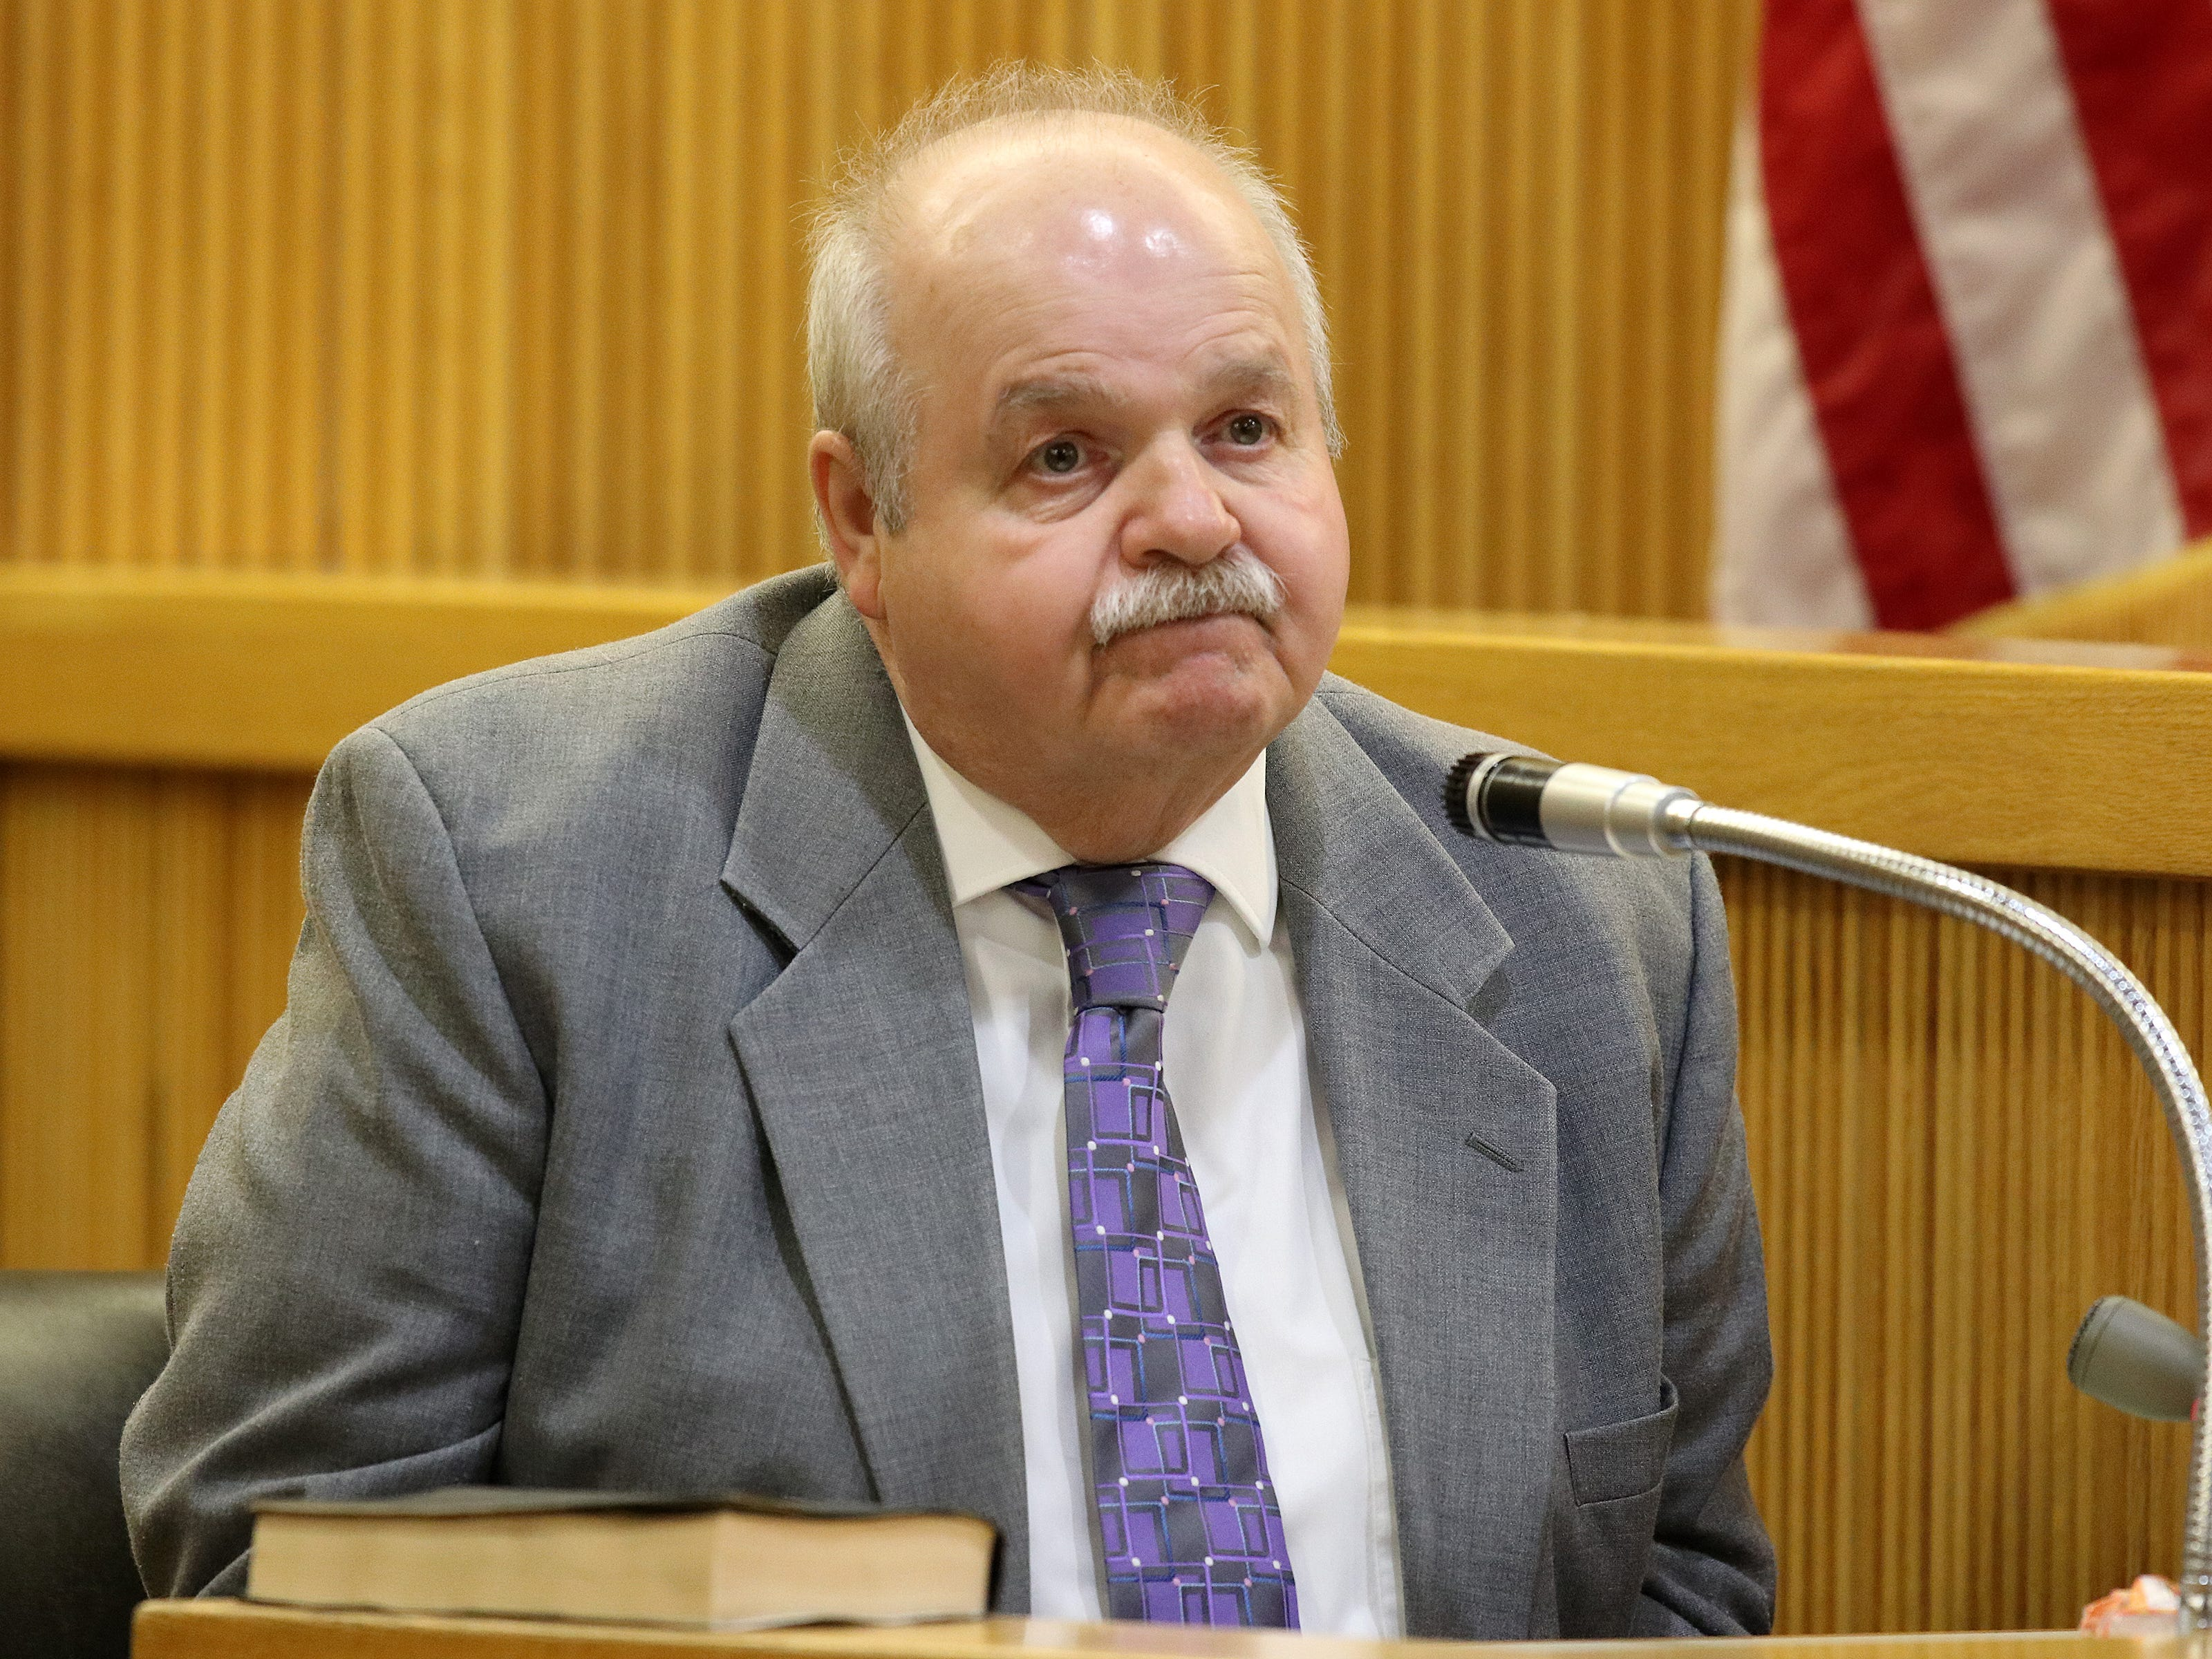 Raymond Bloetjes, friend of the Stern family and manager of the Kearny Bank in Bradley Beach, talks about seeing Sarah Stern in his bank on December 2, 2016 as he testifies during the trial of Liam McAtasney, who is charged with the murder of former high school classmate, Sarah Stern, before Superior Court Judge Richard W. English at the Monmouth County Courthouse in Freehold, NJ Thursday January 24, 2019.